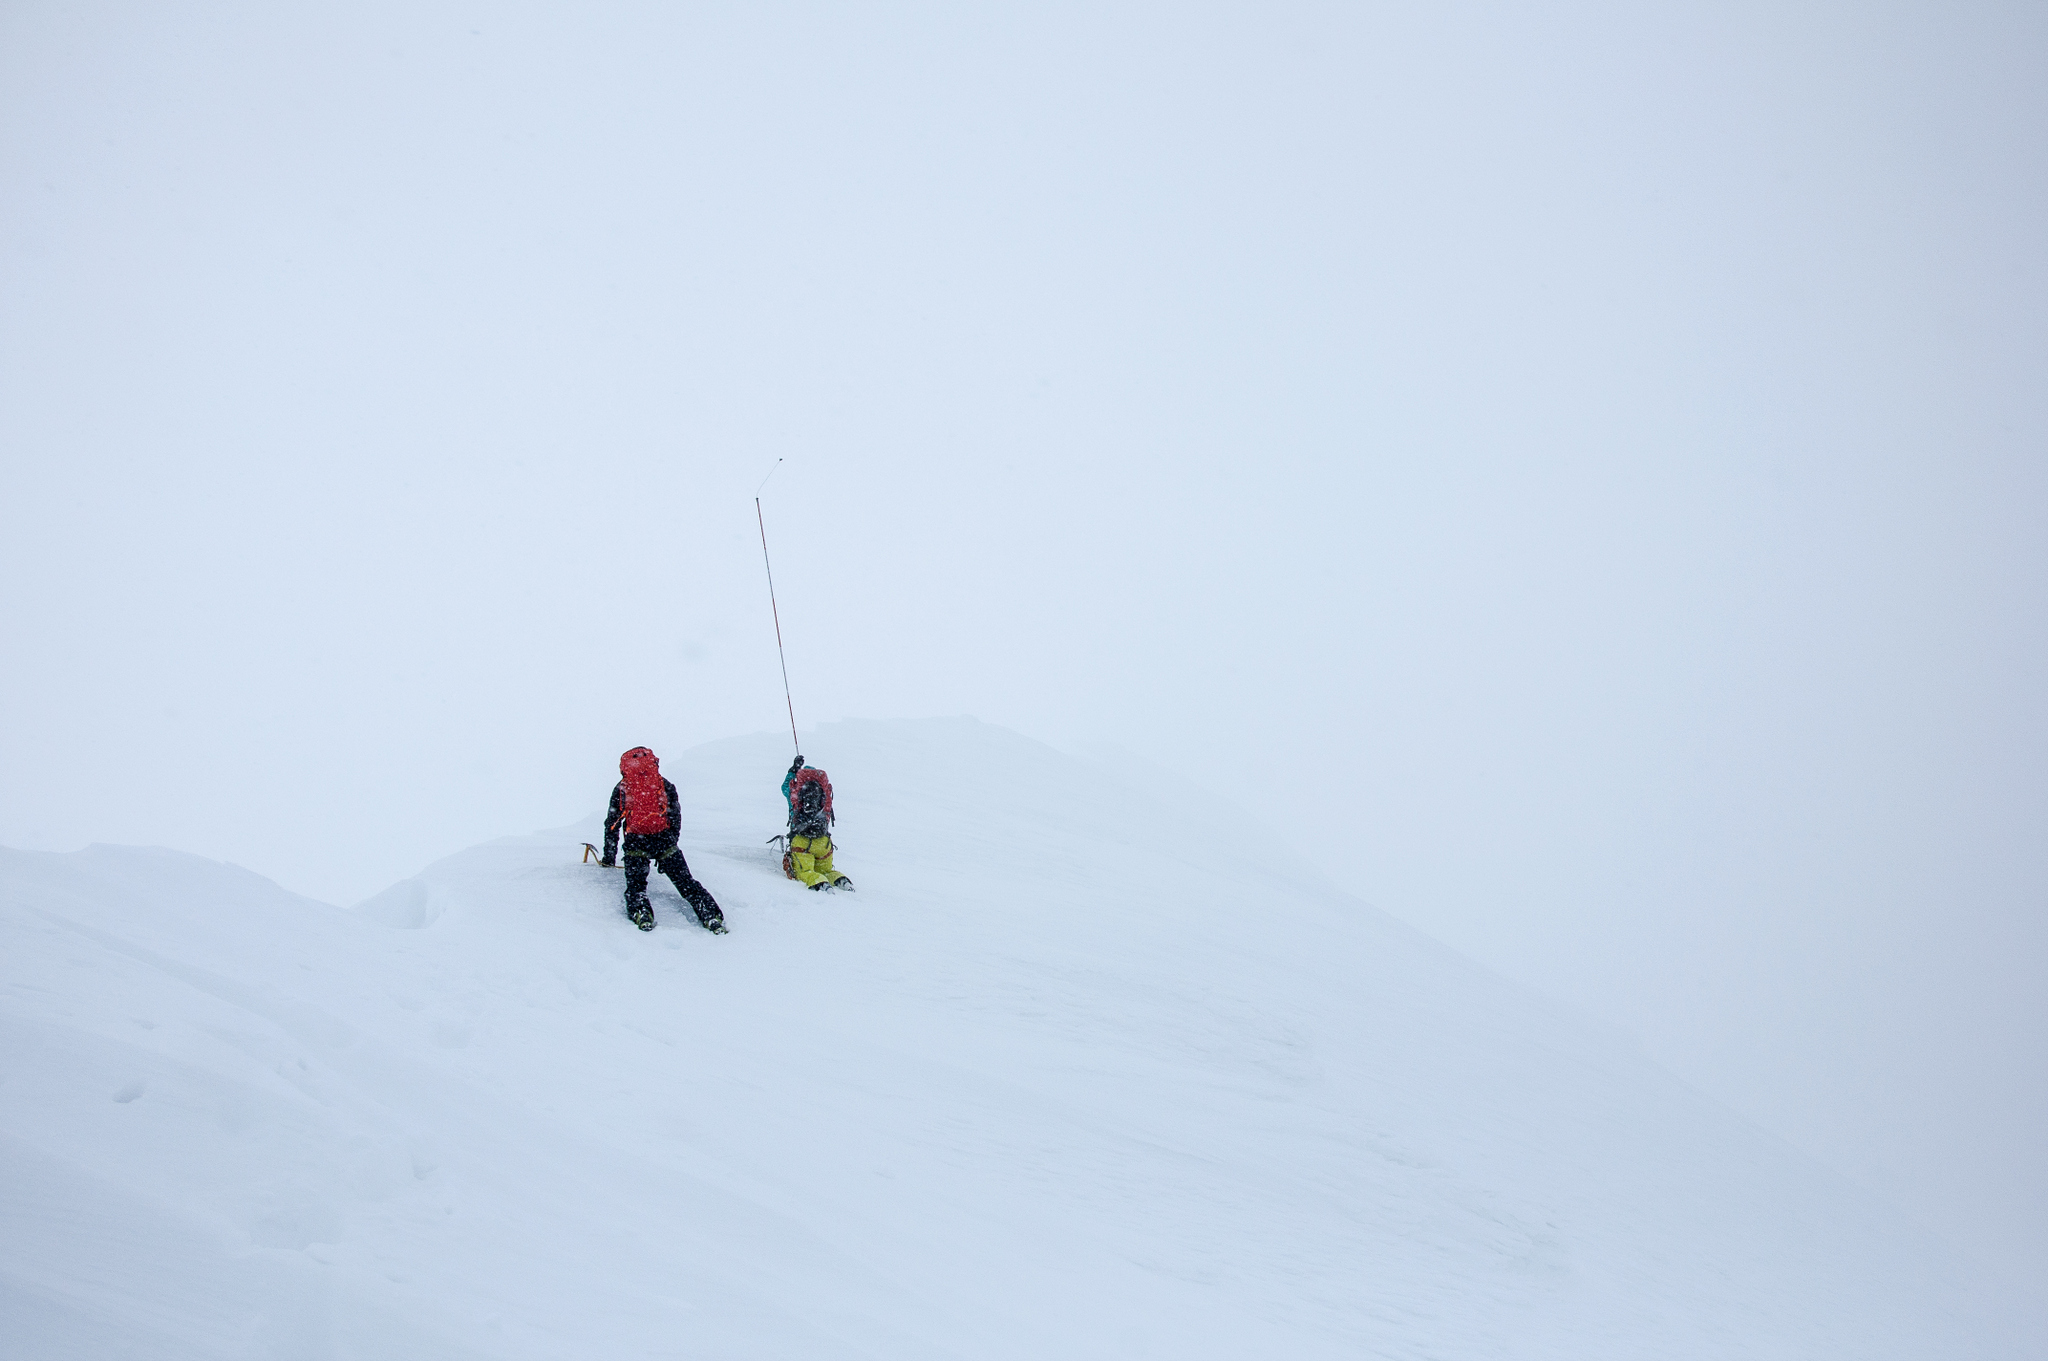 Figure 2: Charlie Plays another fun round of 'ridge or cornice'.